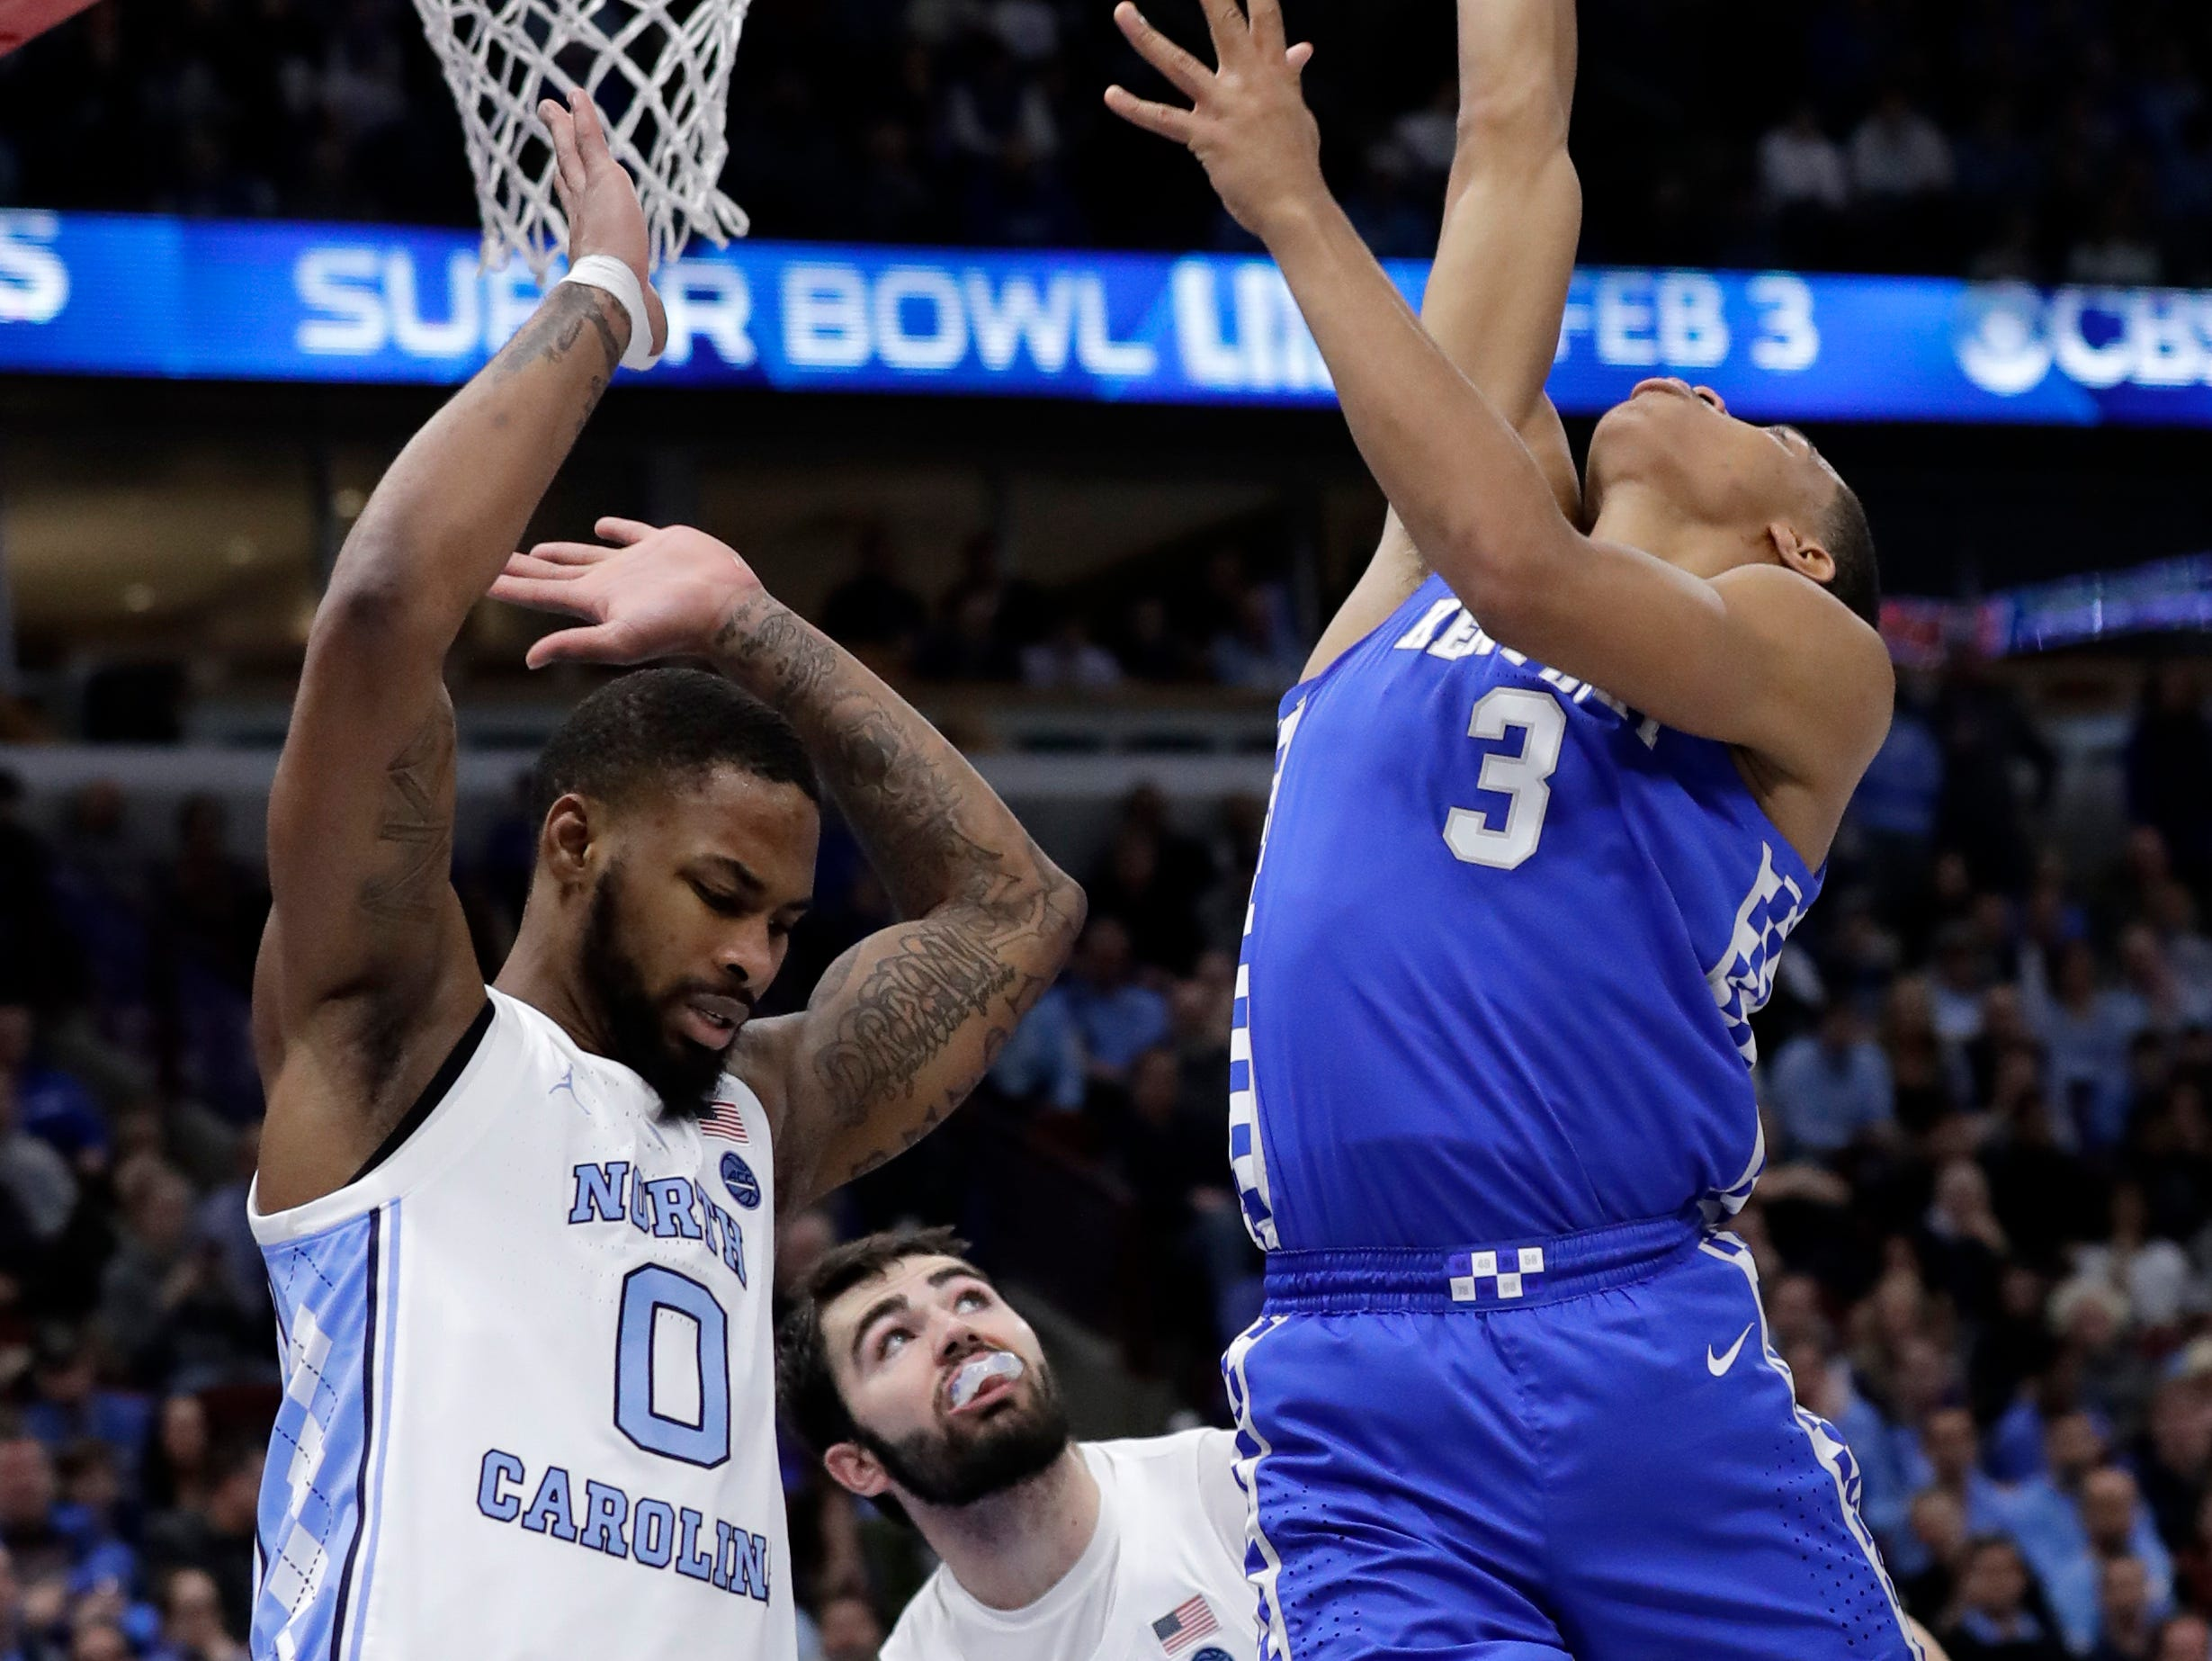 Kentucky guard Keldon Johnson, right, shoots over North Carolina guard Seventh Woods, left, during the second half of an NCAA college basketball game Saturday, Dec. 22, 2018, in Chicago. Kentucky won 80-72.